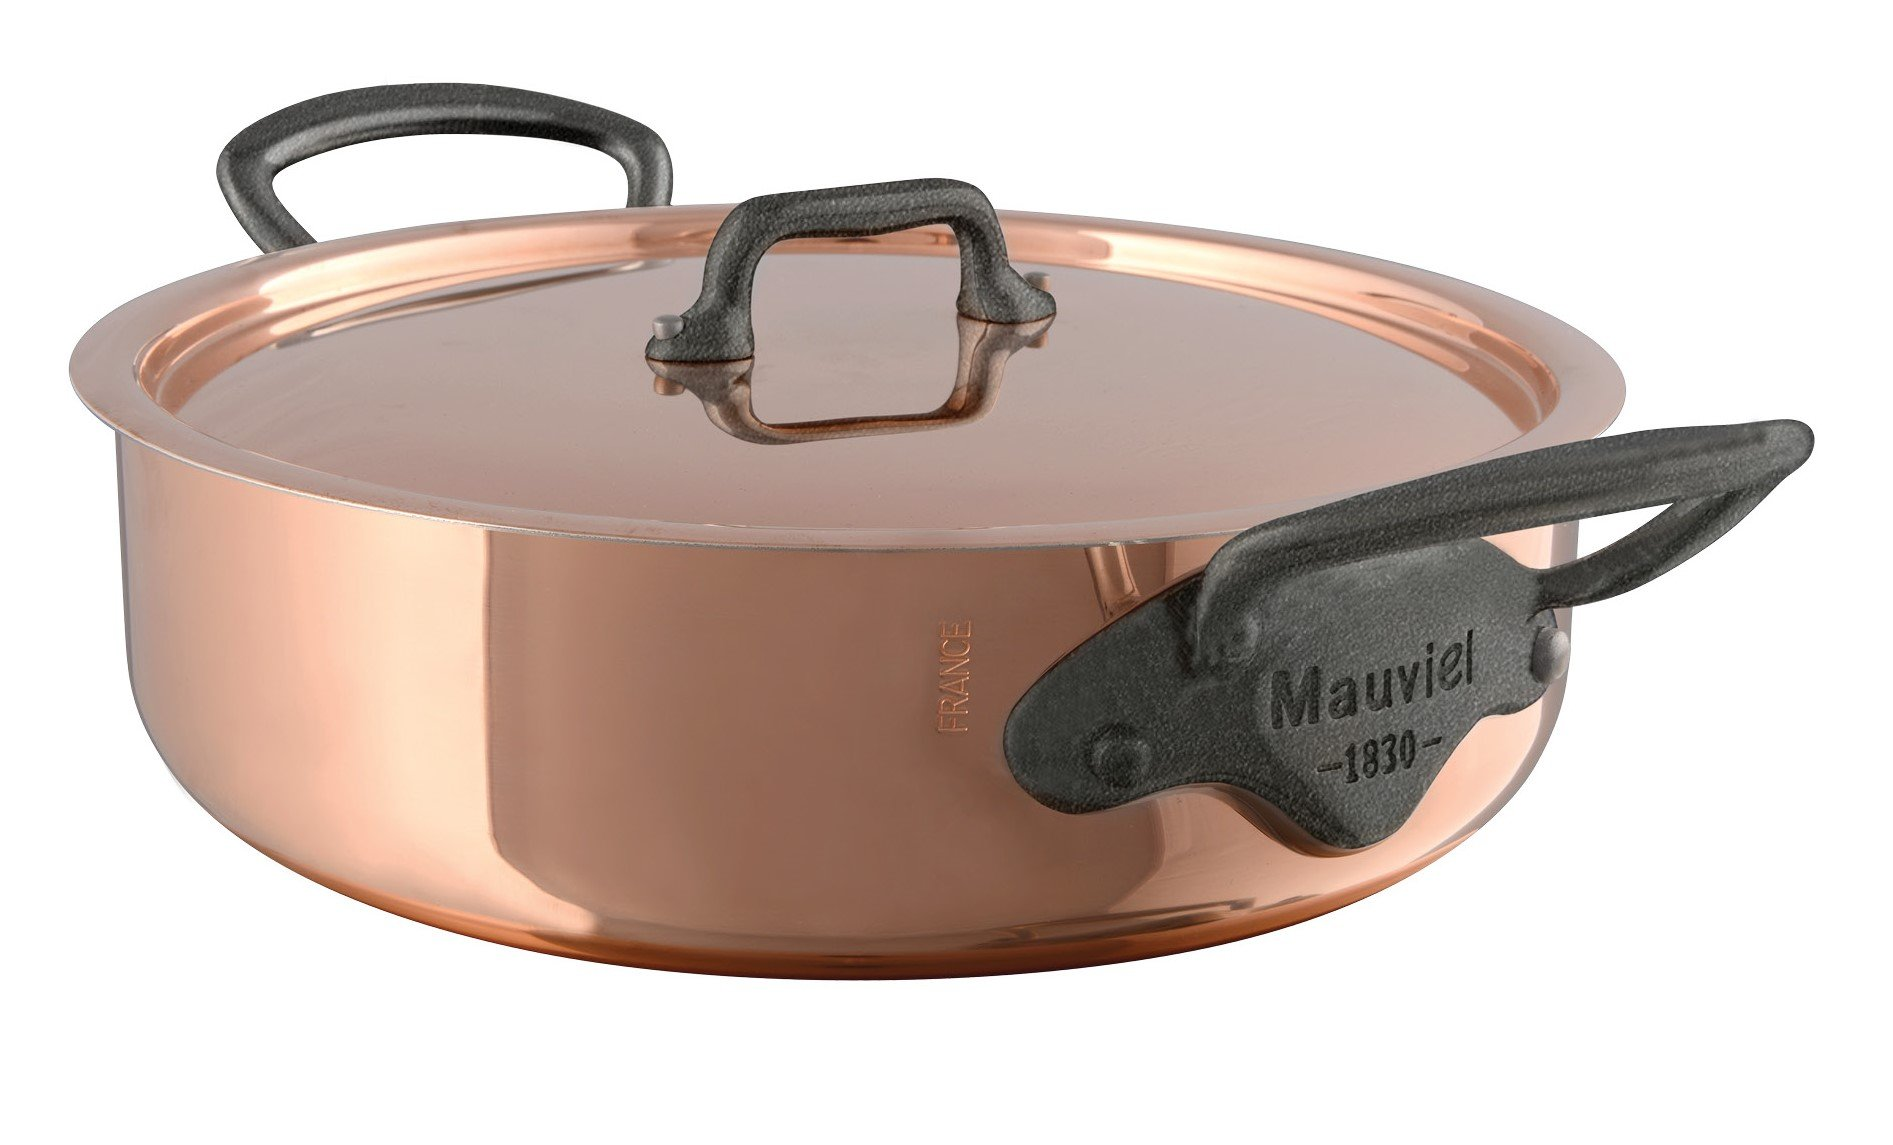 Mauviel M'Heritage M150C 6480.25 Copper Rondeau/Covered Casserole with Lid. 2.9L/3.1 quart 24cm/9.5'' with Cast Stainless Steel Iron Eletroplated  Handle